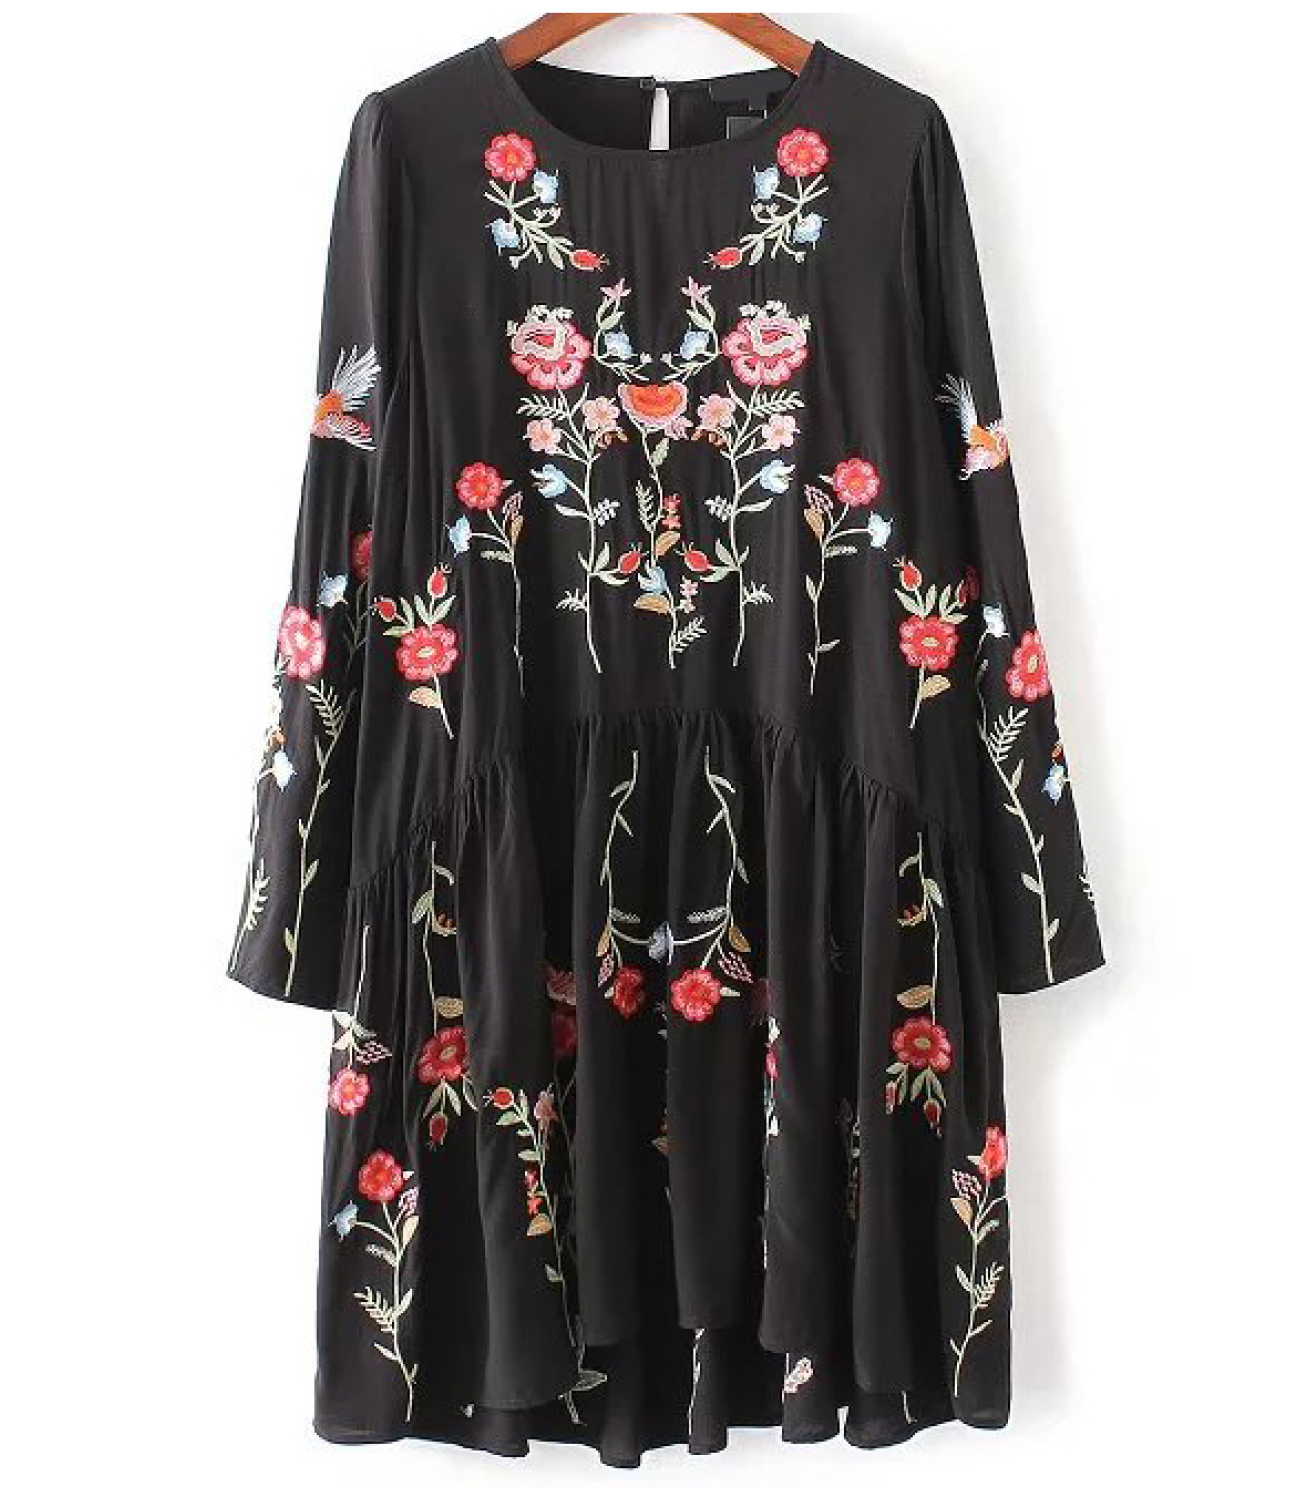 Buy Shein Embroidered Dress